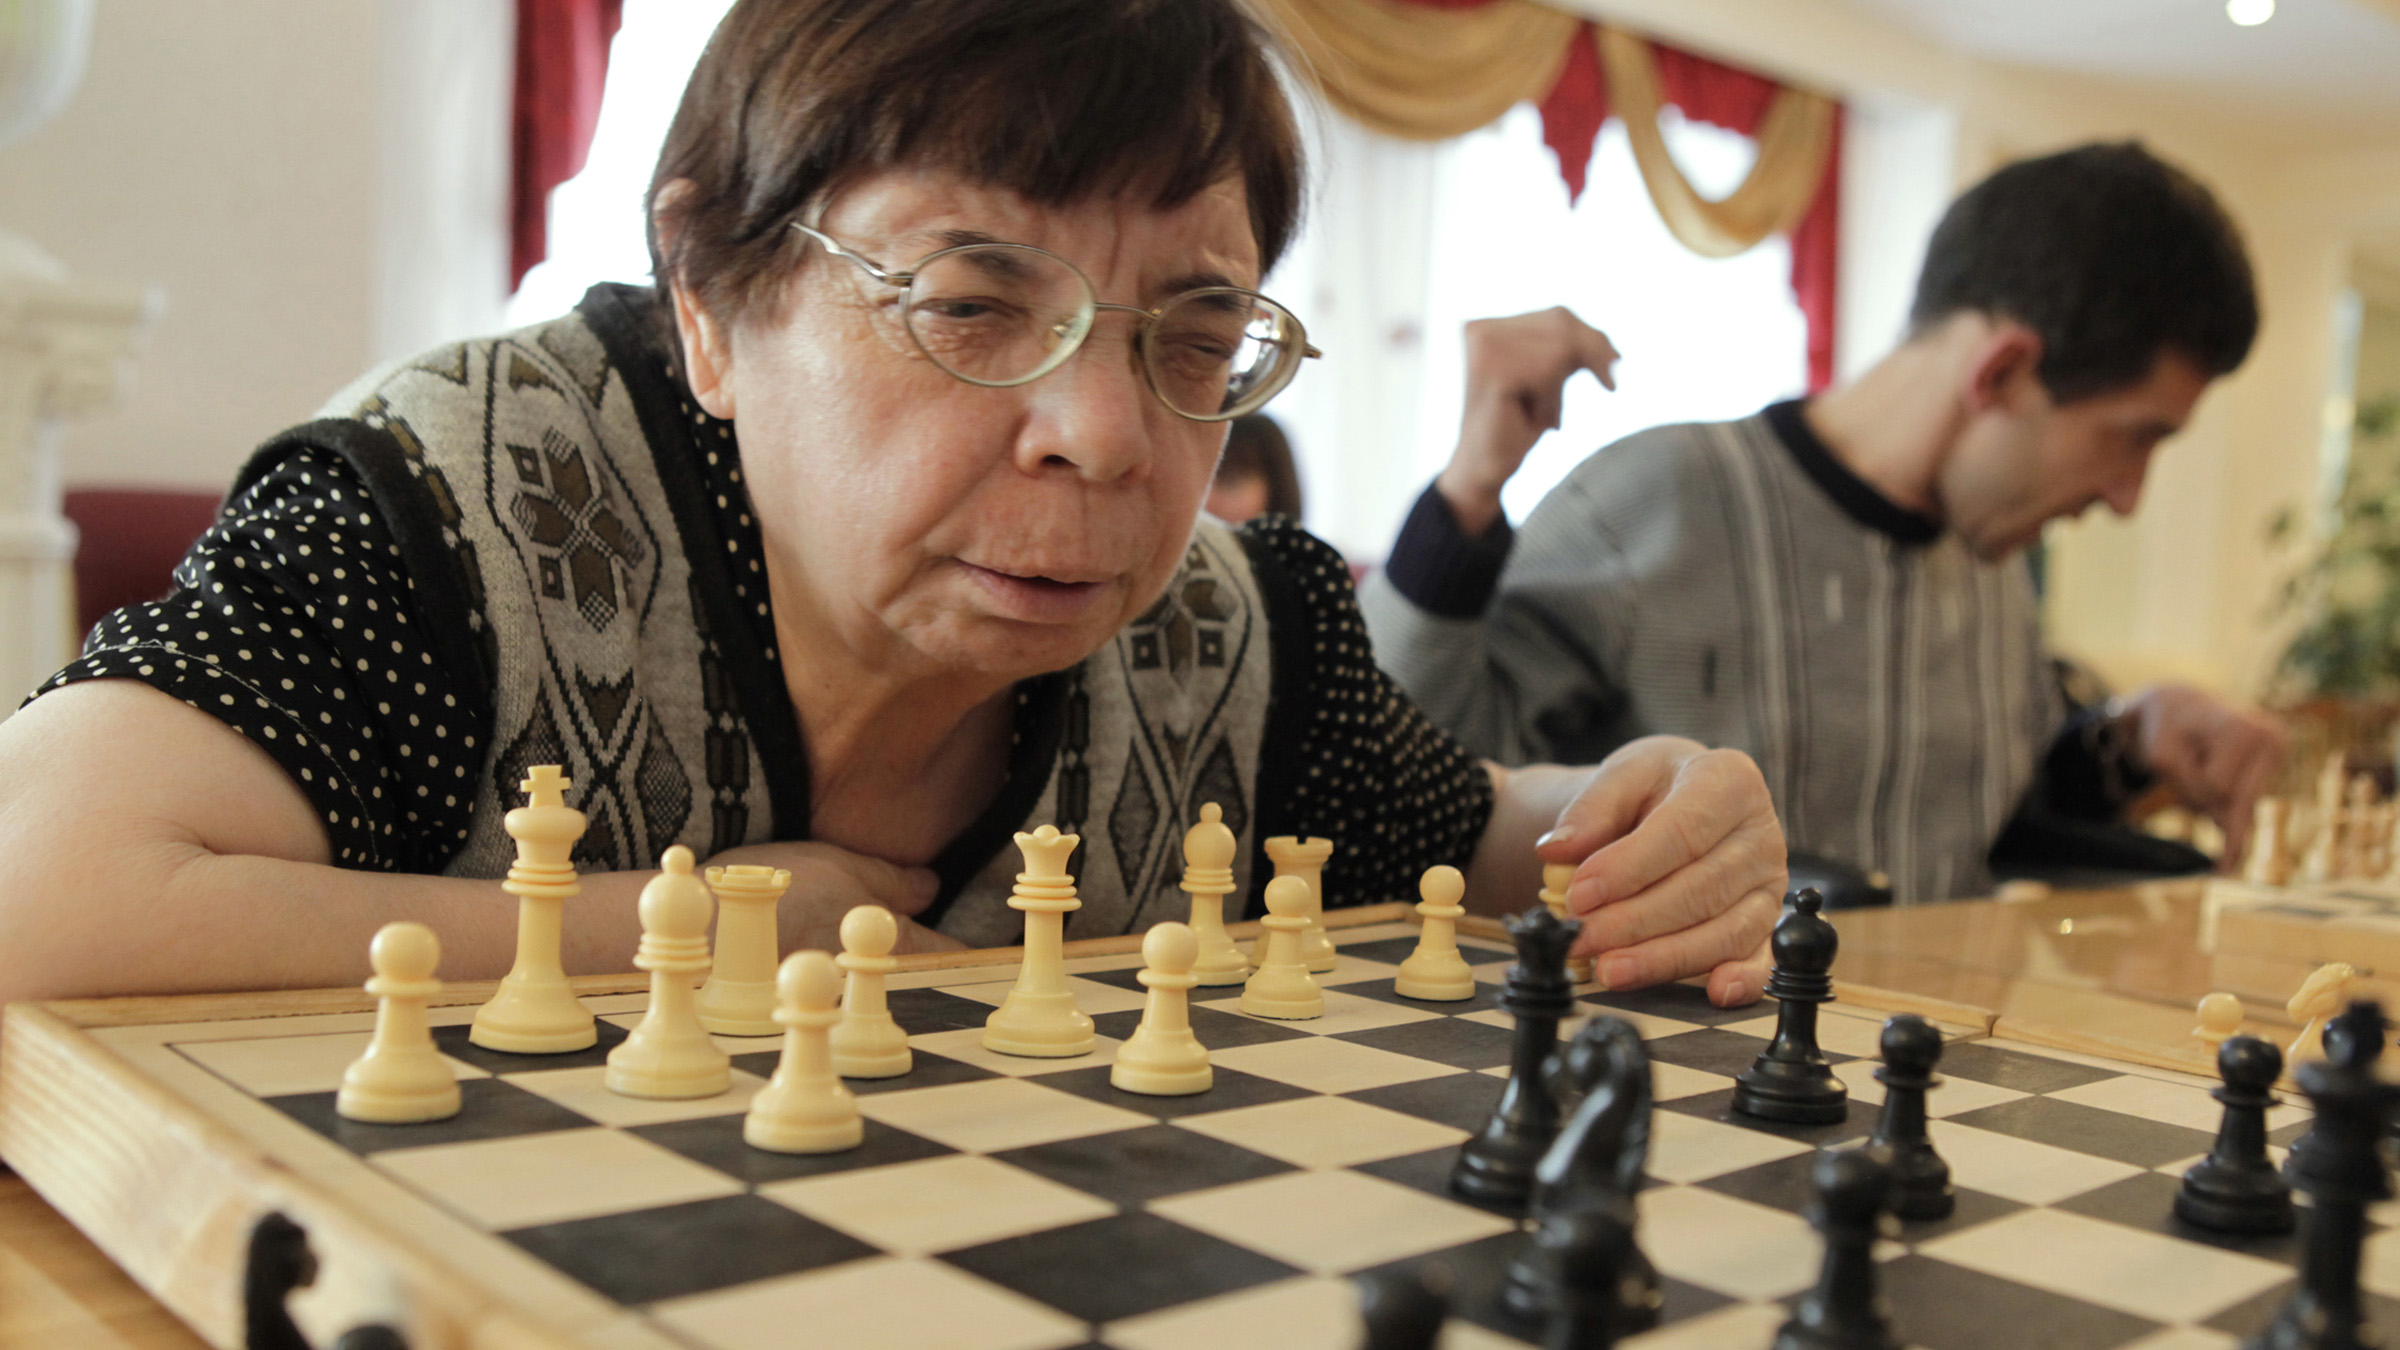 An elderly woman takes part in a chess competition at a gerontological center in Stavropol November 25, 2010. Some 40 participants from elderly homes around the region took part in the competition.  REUTERS/Eduard Korniyenko  (RUSSIA - Tags: SPORT CHESS HEALTH SOCIETY IMAGES OF THE DAY) - RTXV257